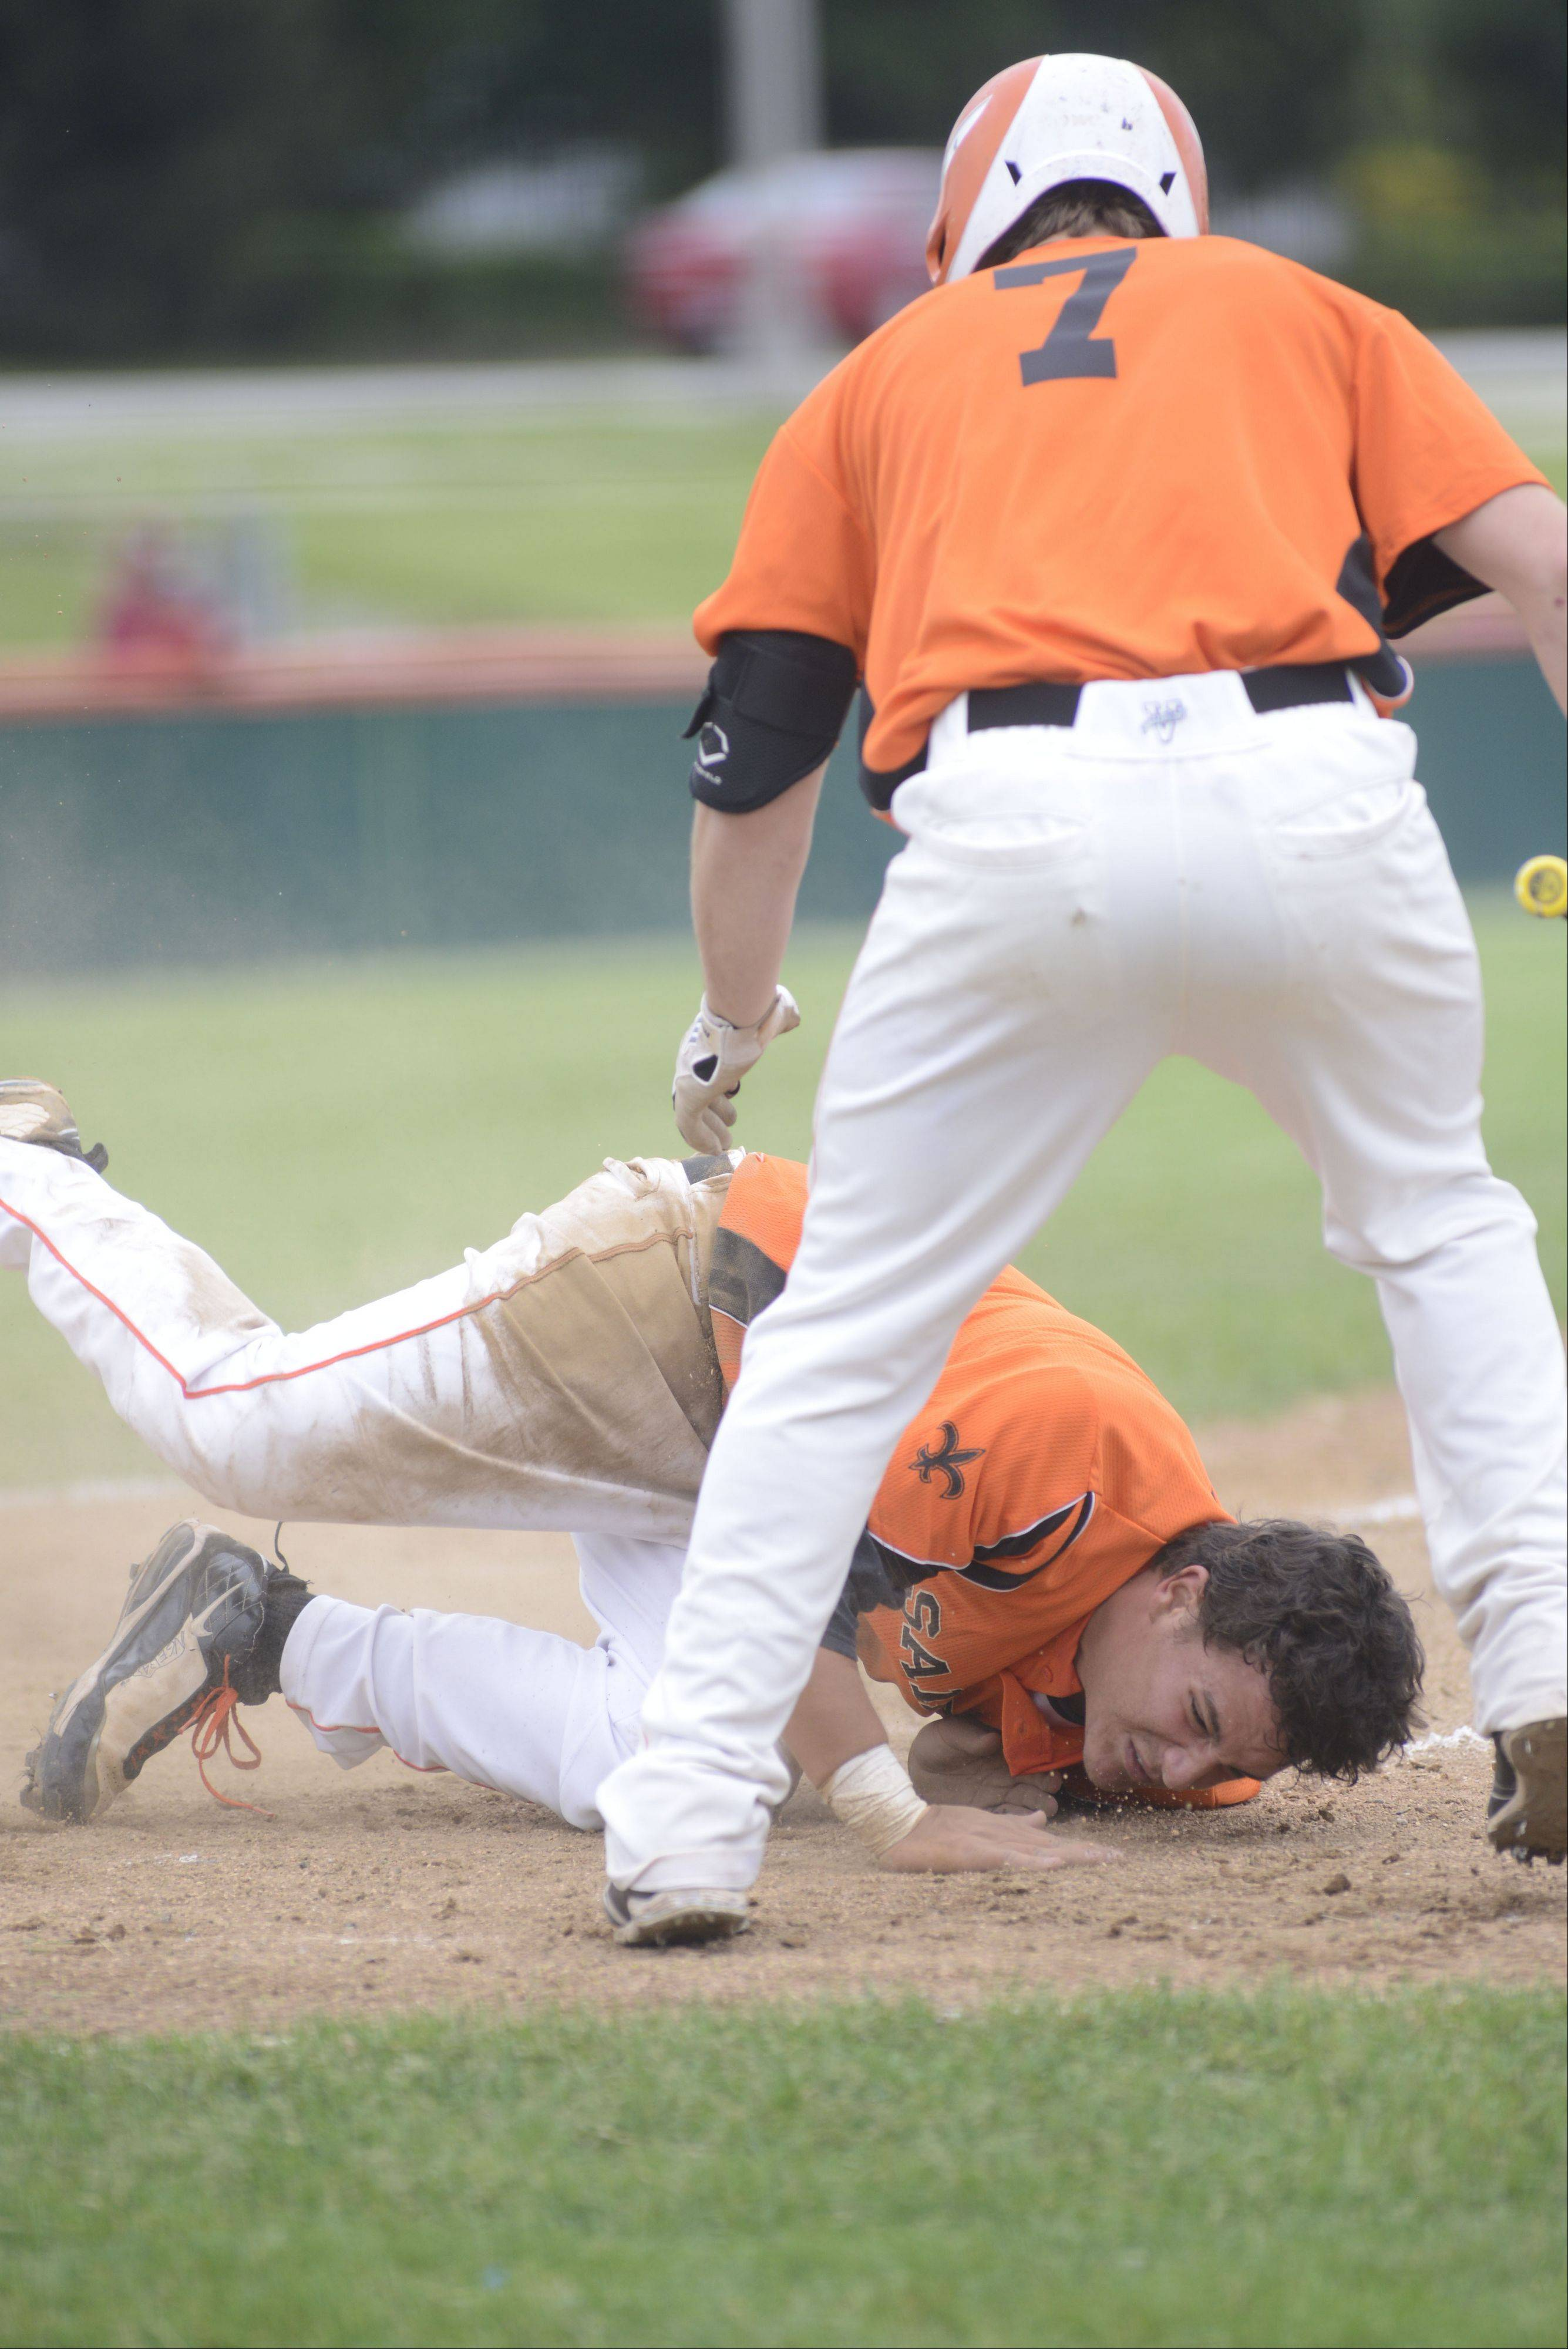 St. Charles East's Anthony Sciarrino tumbles in the dirt after a headfirst slide into home plate in front of teammate Nick Huskisson to break the tie in the fifth inning of the Class 4A sectional championship vs. Wheaton North on Saturday, June 1.